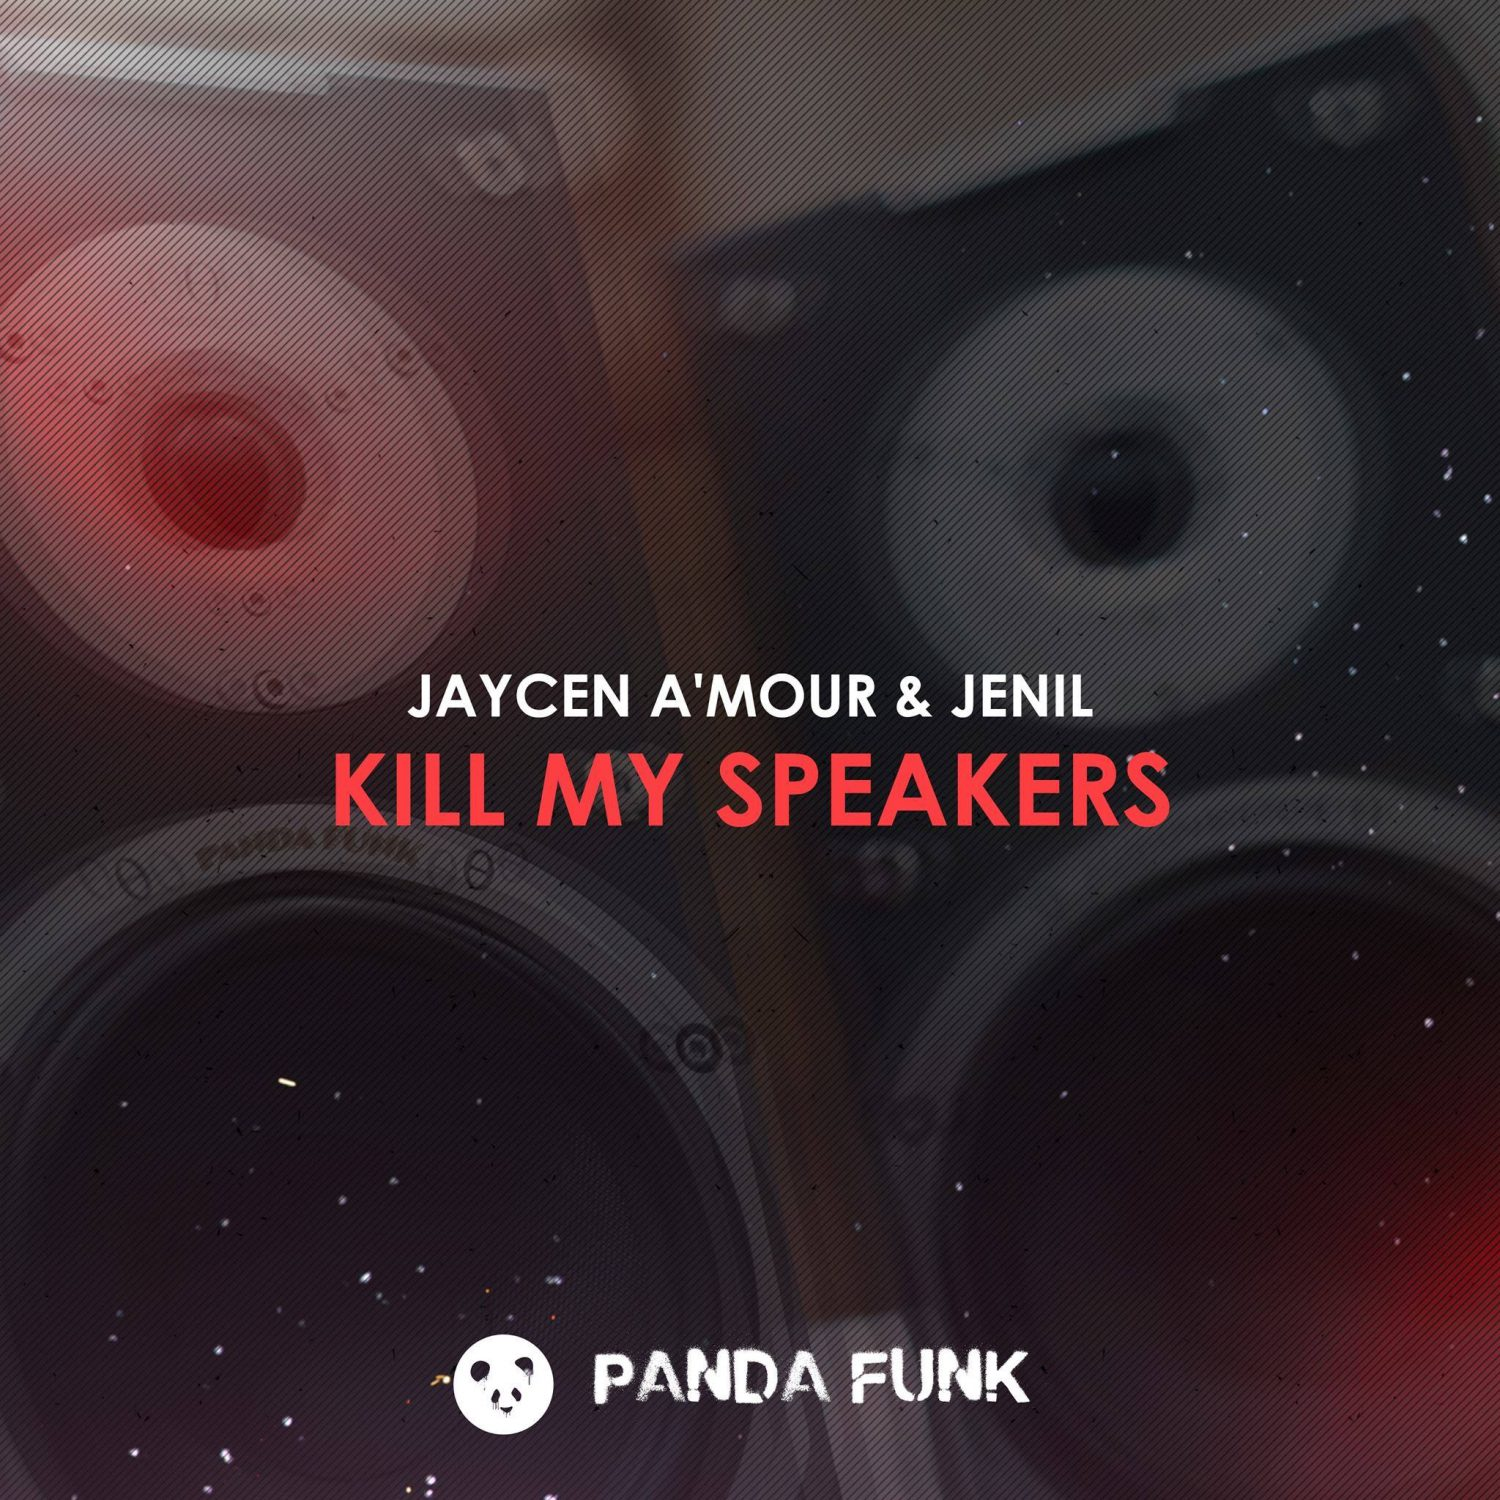 jaycen-amour-jenil-kill-my-speakers